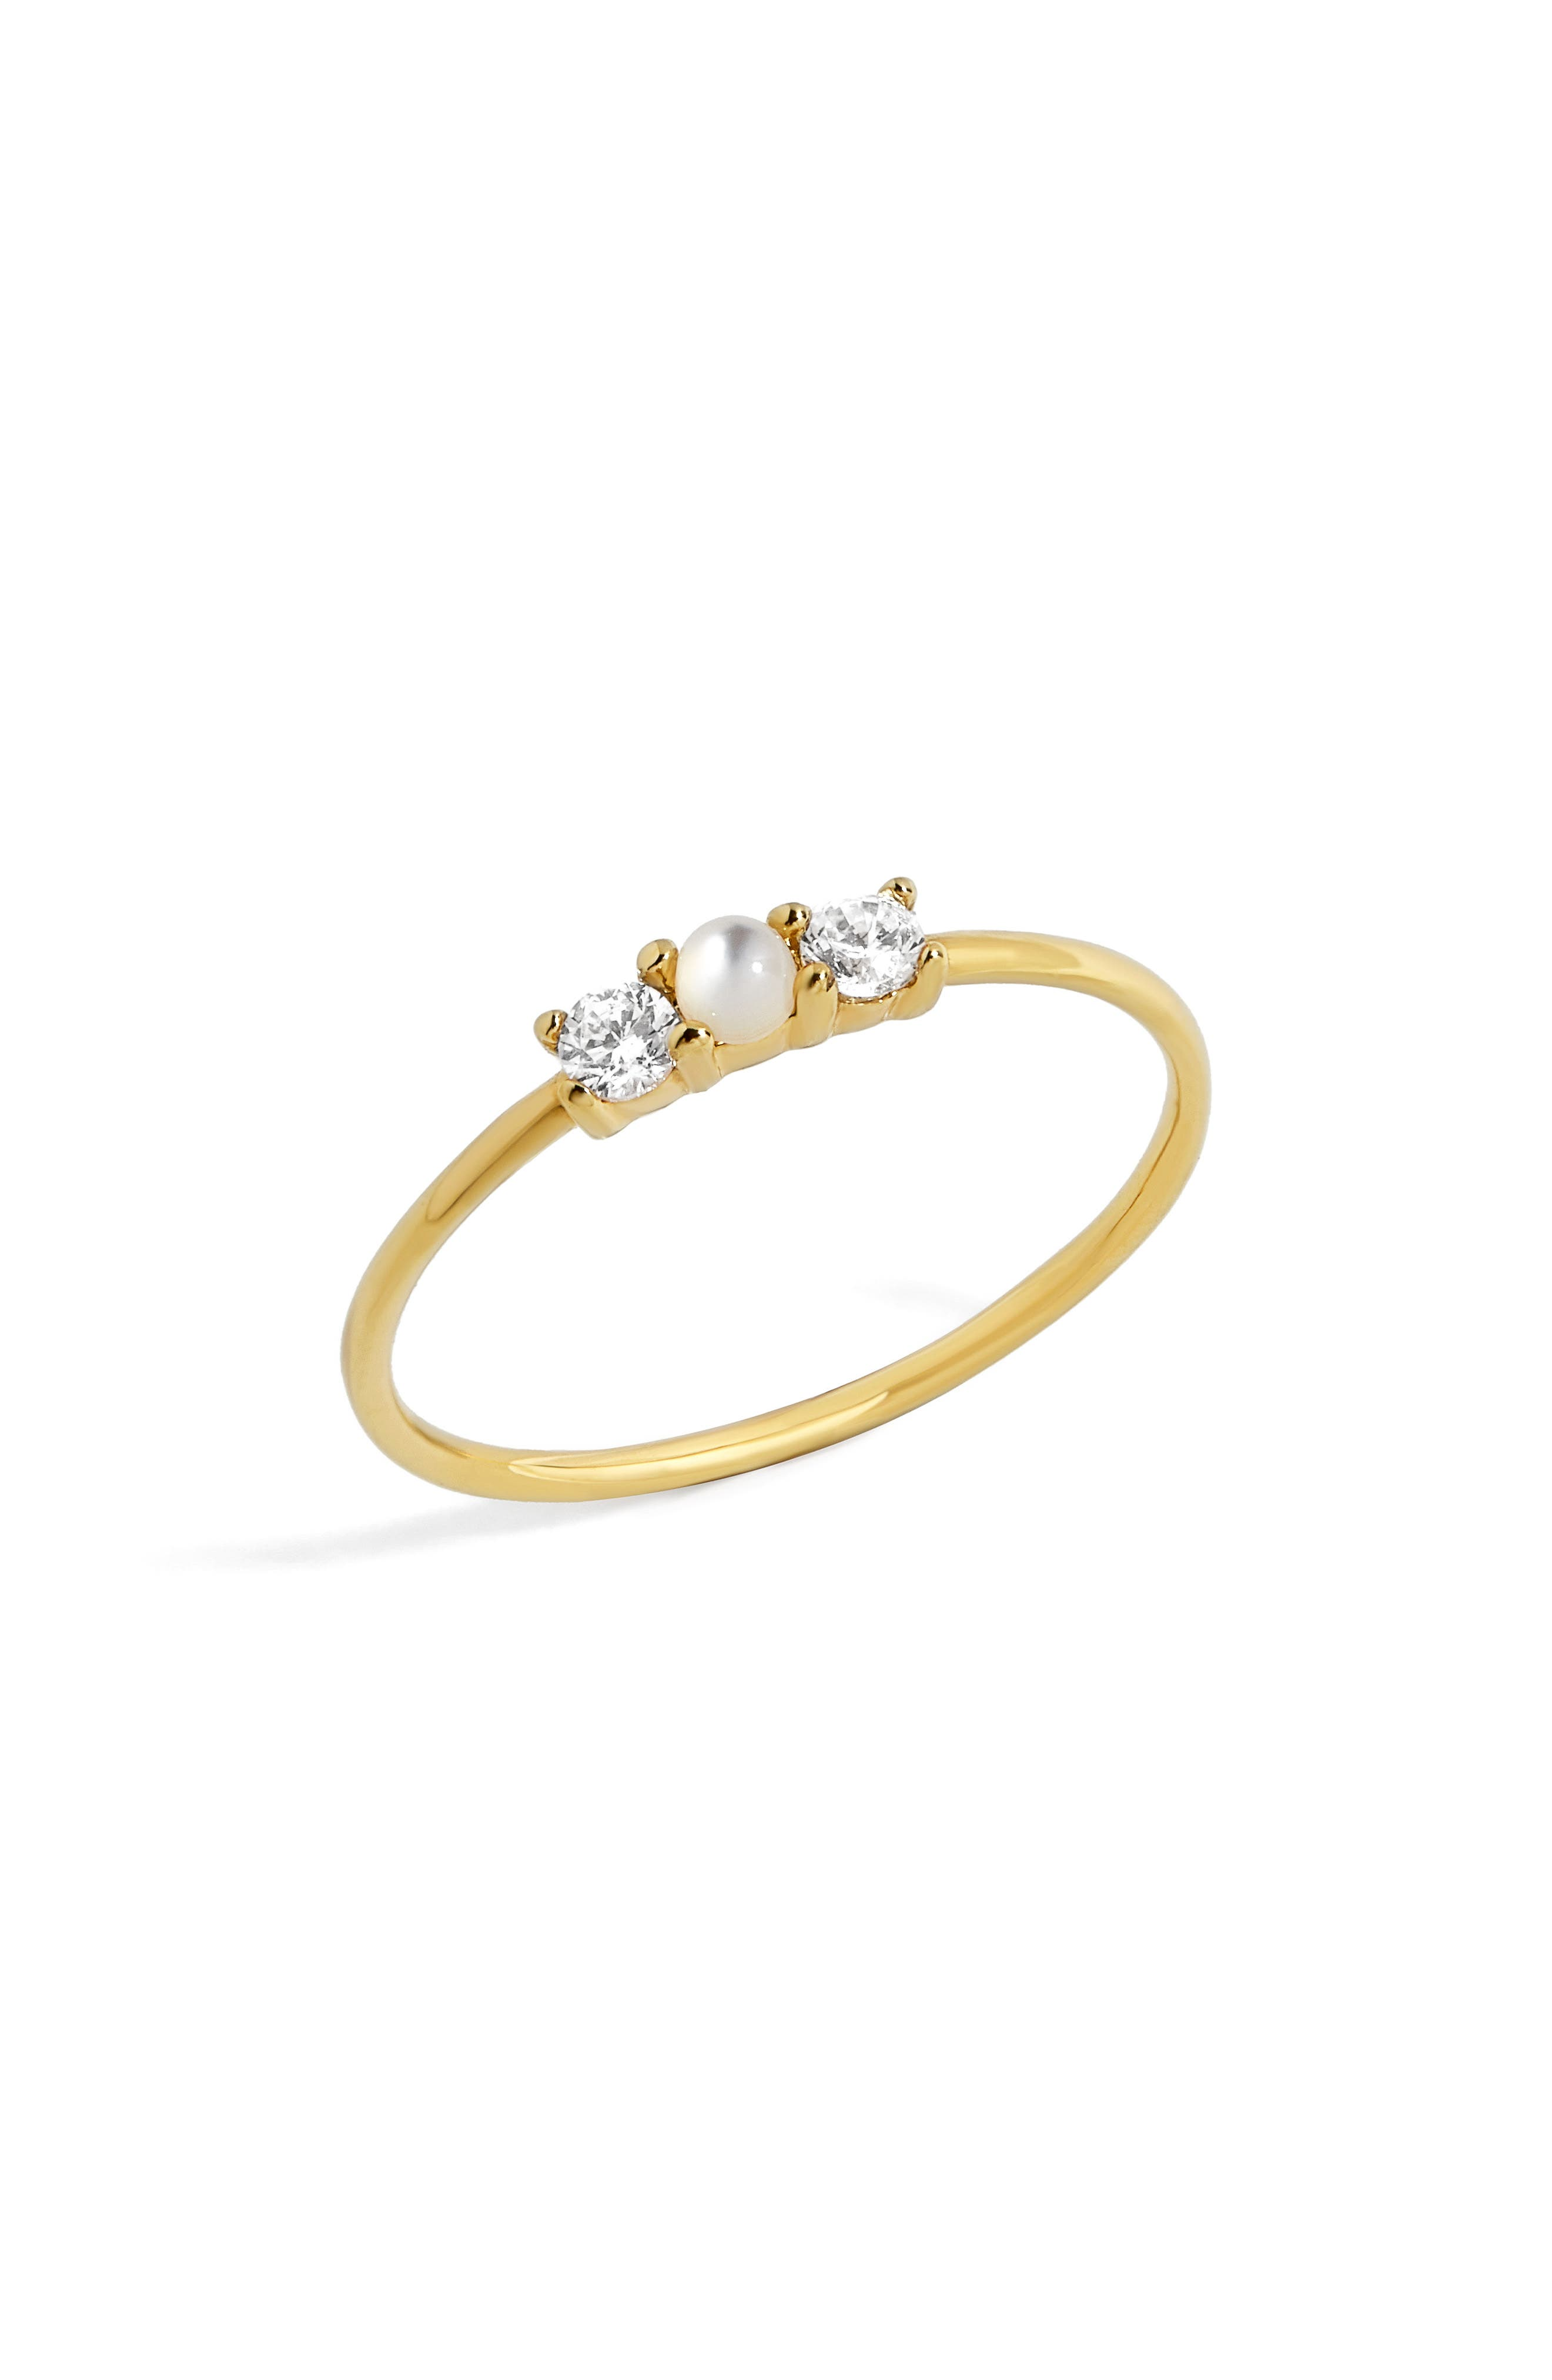 Opalescent Everyday Fine Ring,                         Main,                         color, Gold